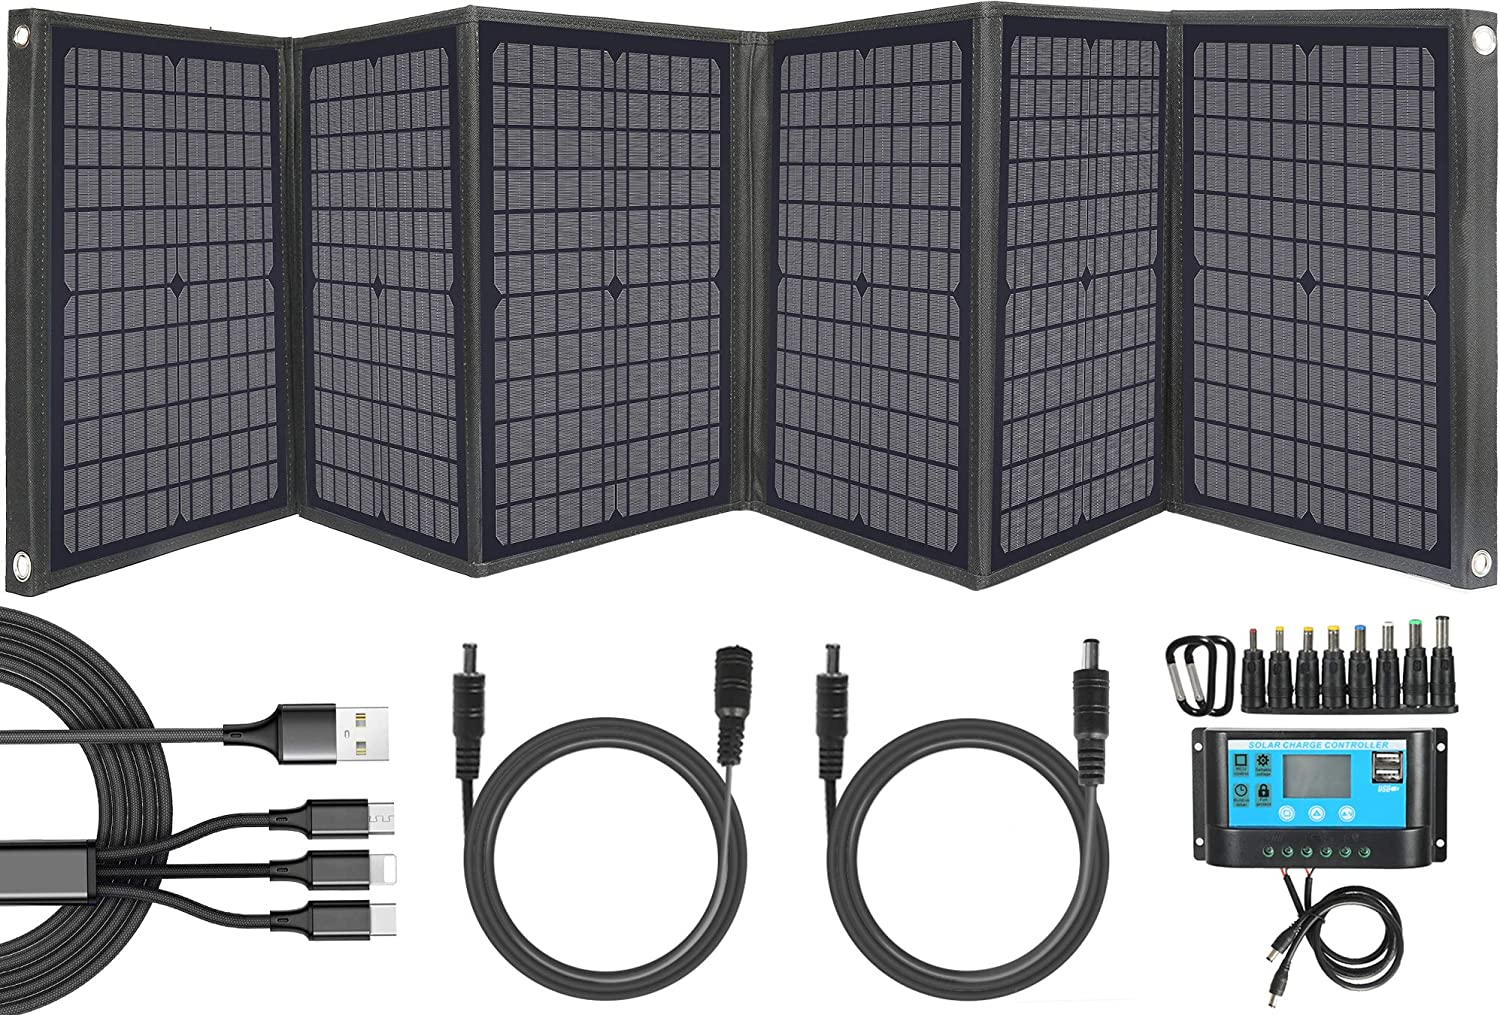 60Watt Portable Solar Panel Charger for Most 100/200Watt Solar Generator Power Station, Compact Solar Kit with 3-in-1 USB Cable/Solar Controller for Phone, Tablet, Camera and More